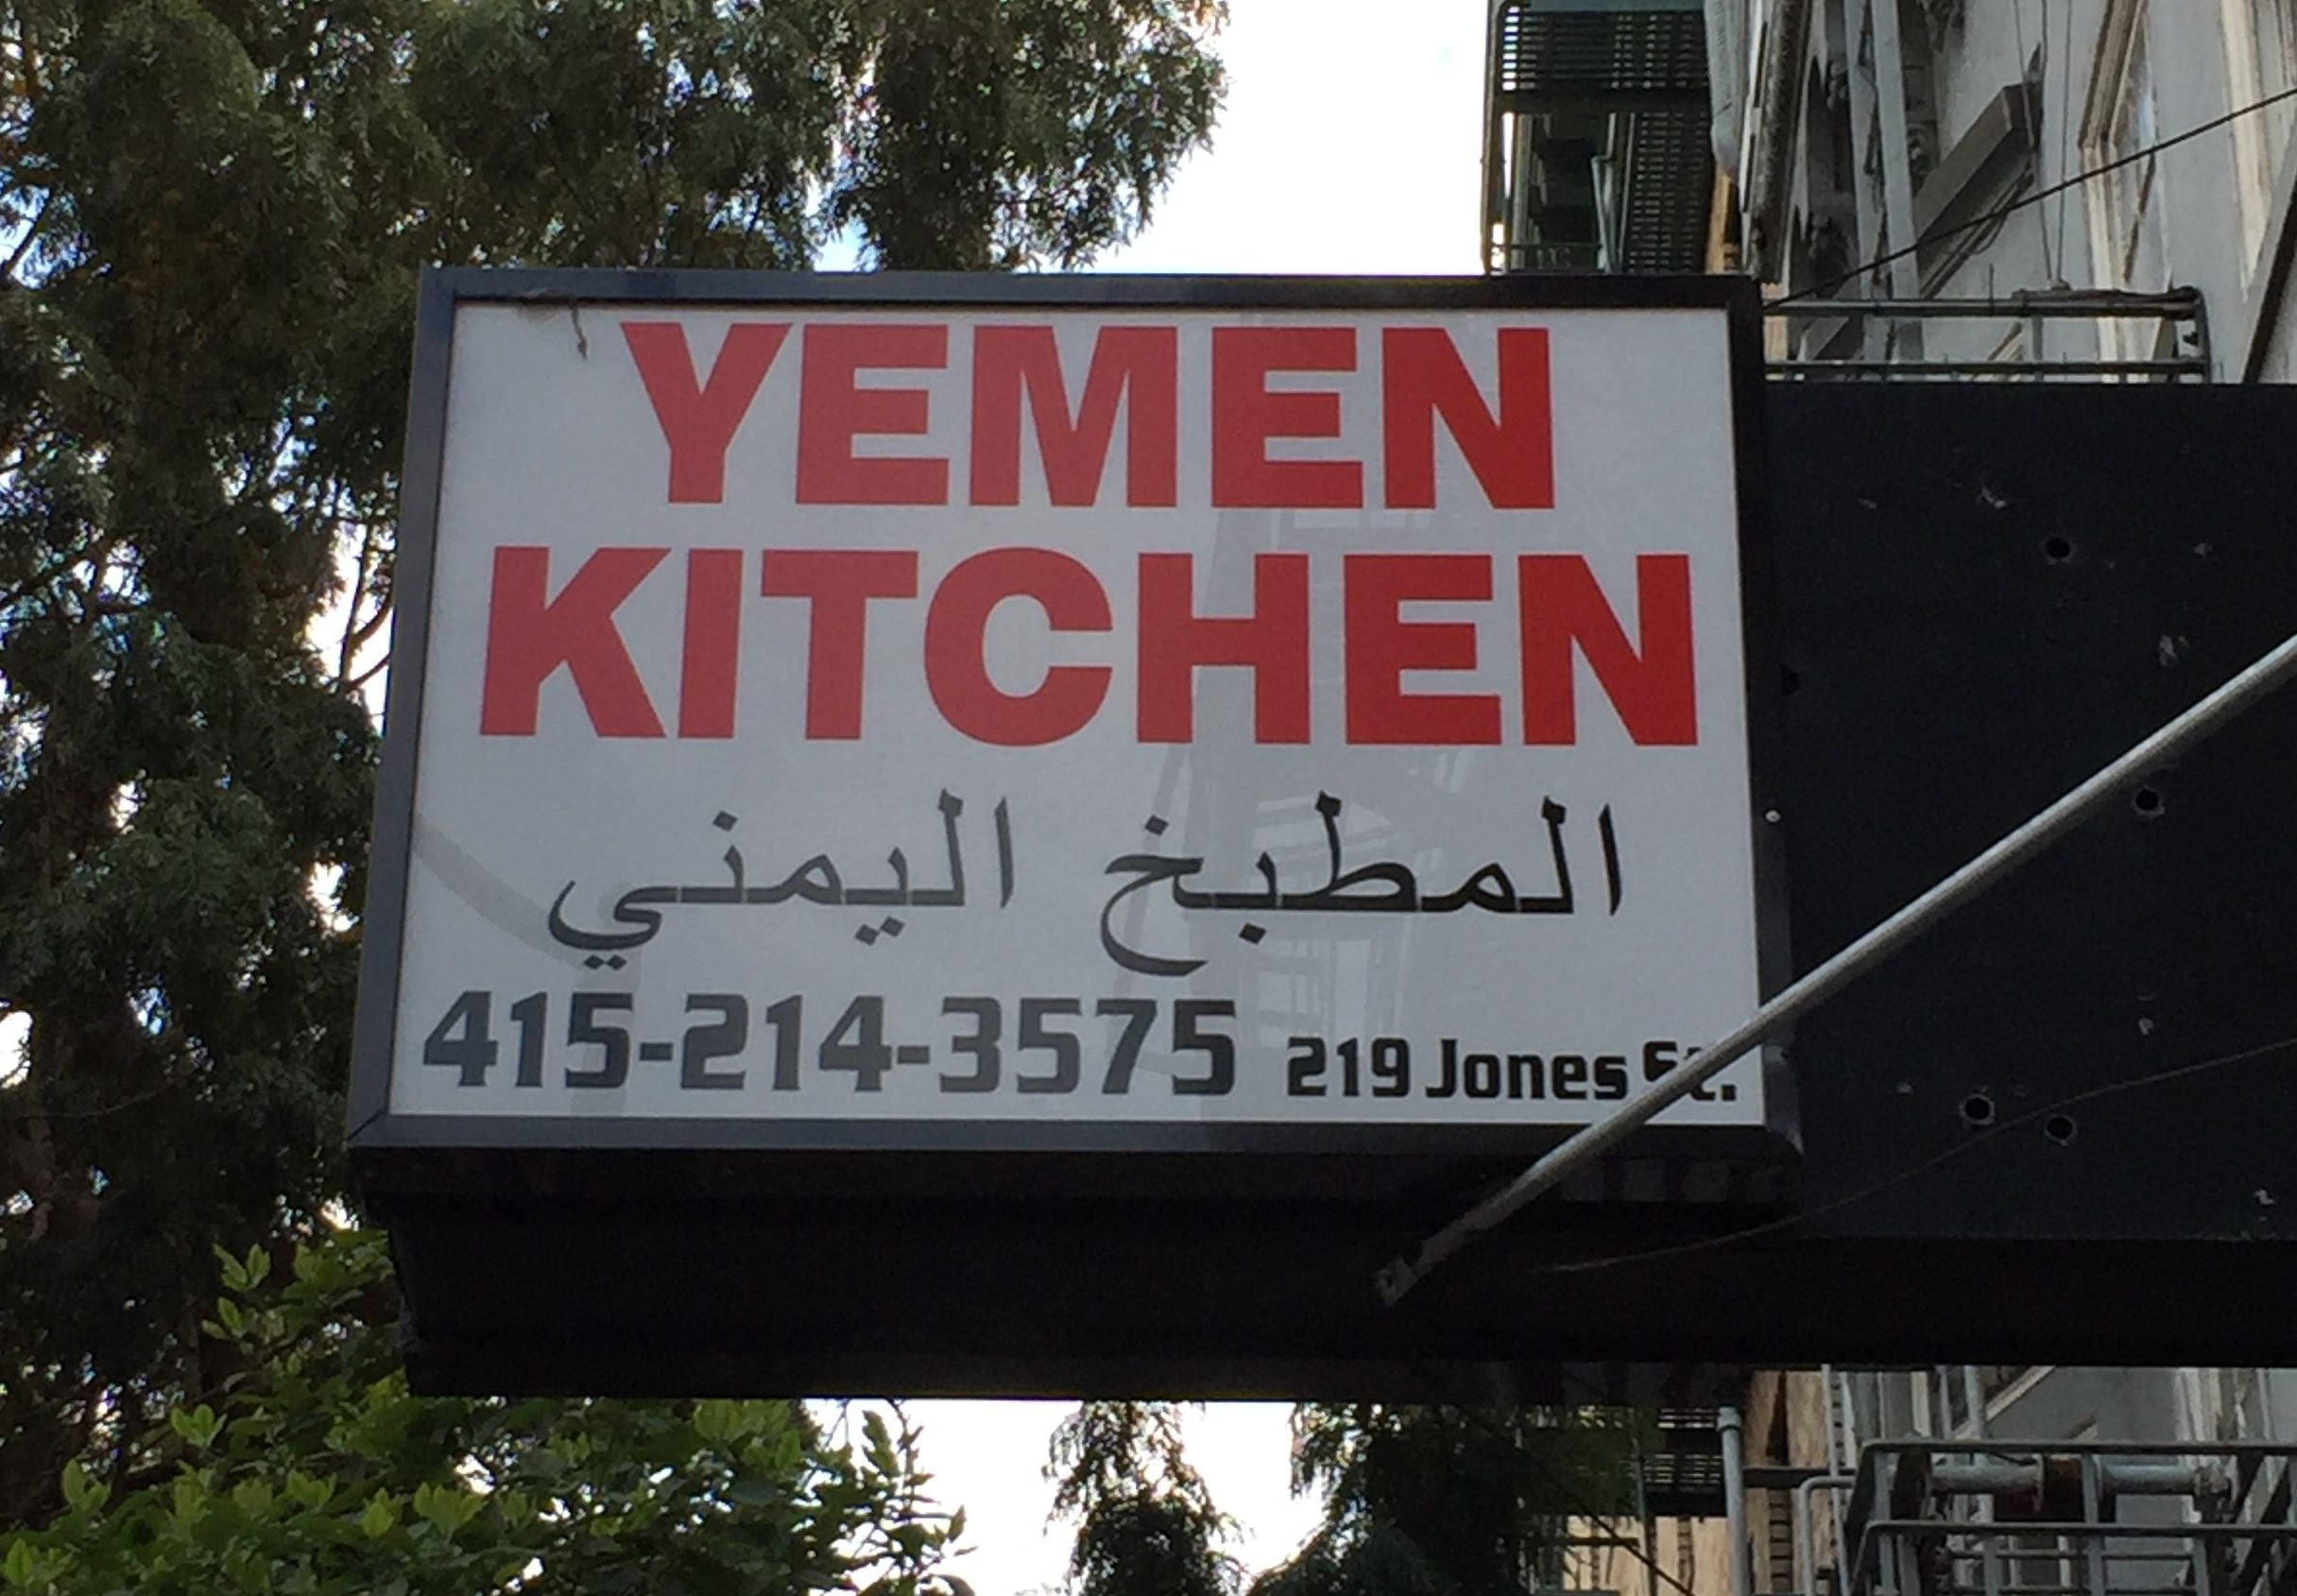 Yemen Kitchen sign